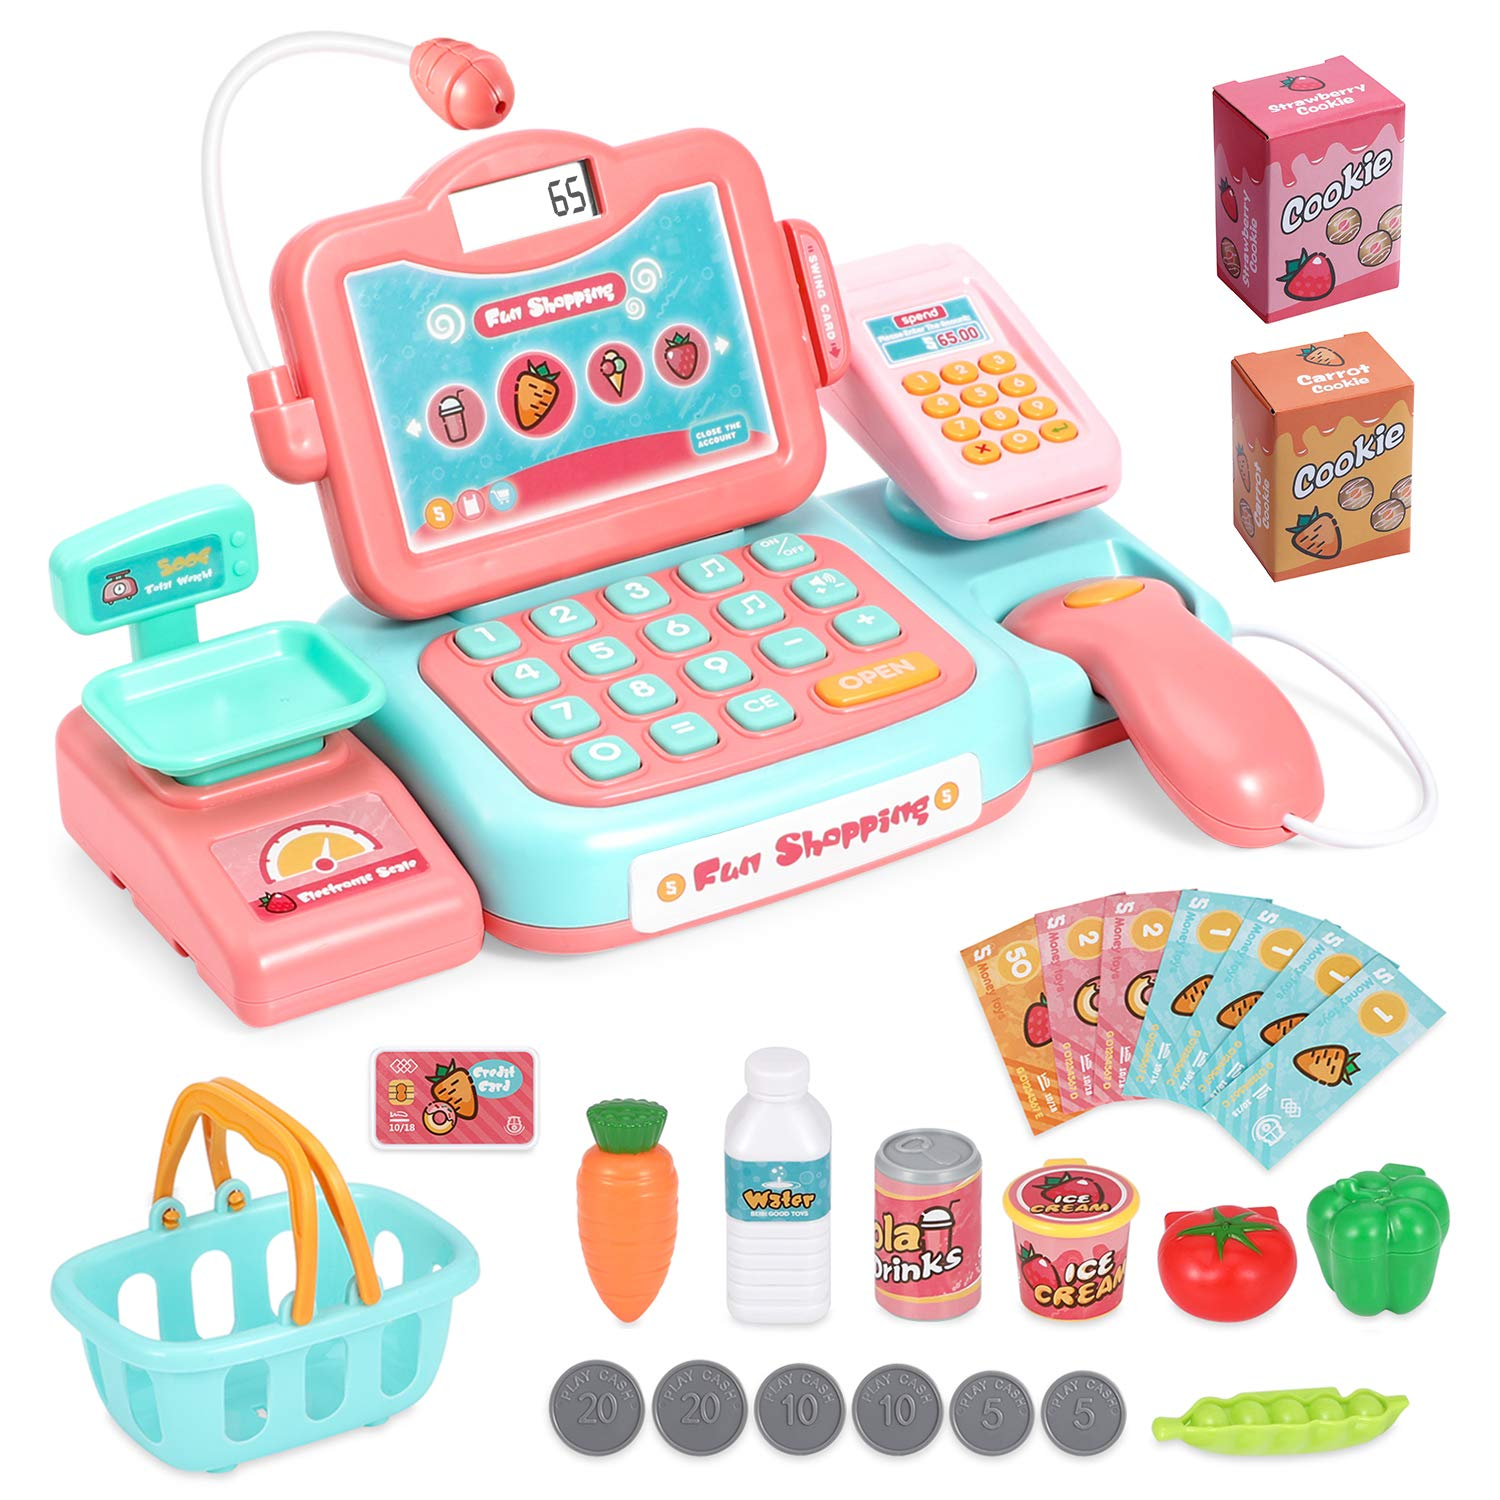 Chuntianli Durable Cash Register Toy-Pretend Play Educational Toy Cash Register with Scanner, Sound, Music, Microphone, Calculator, Play Money & Grocery Toy for Kids, Toddlers & Preschoolers by Chuntianli